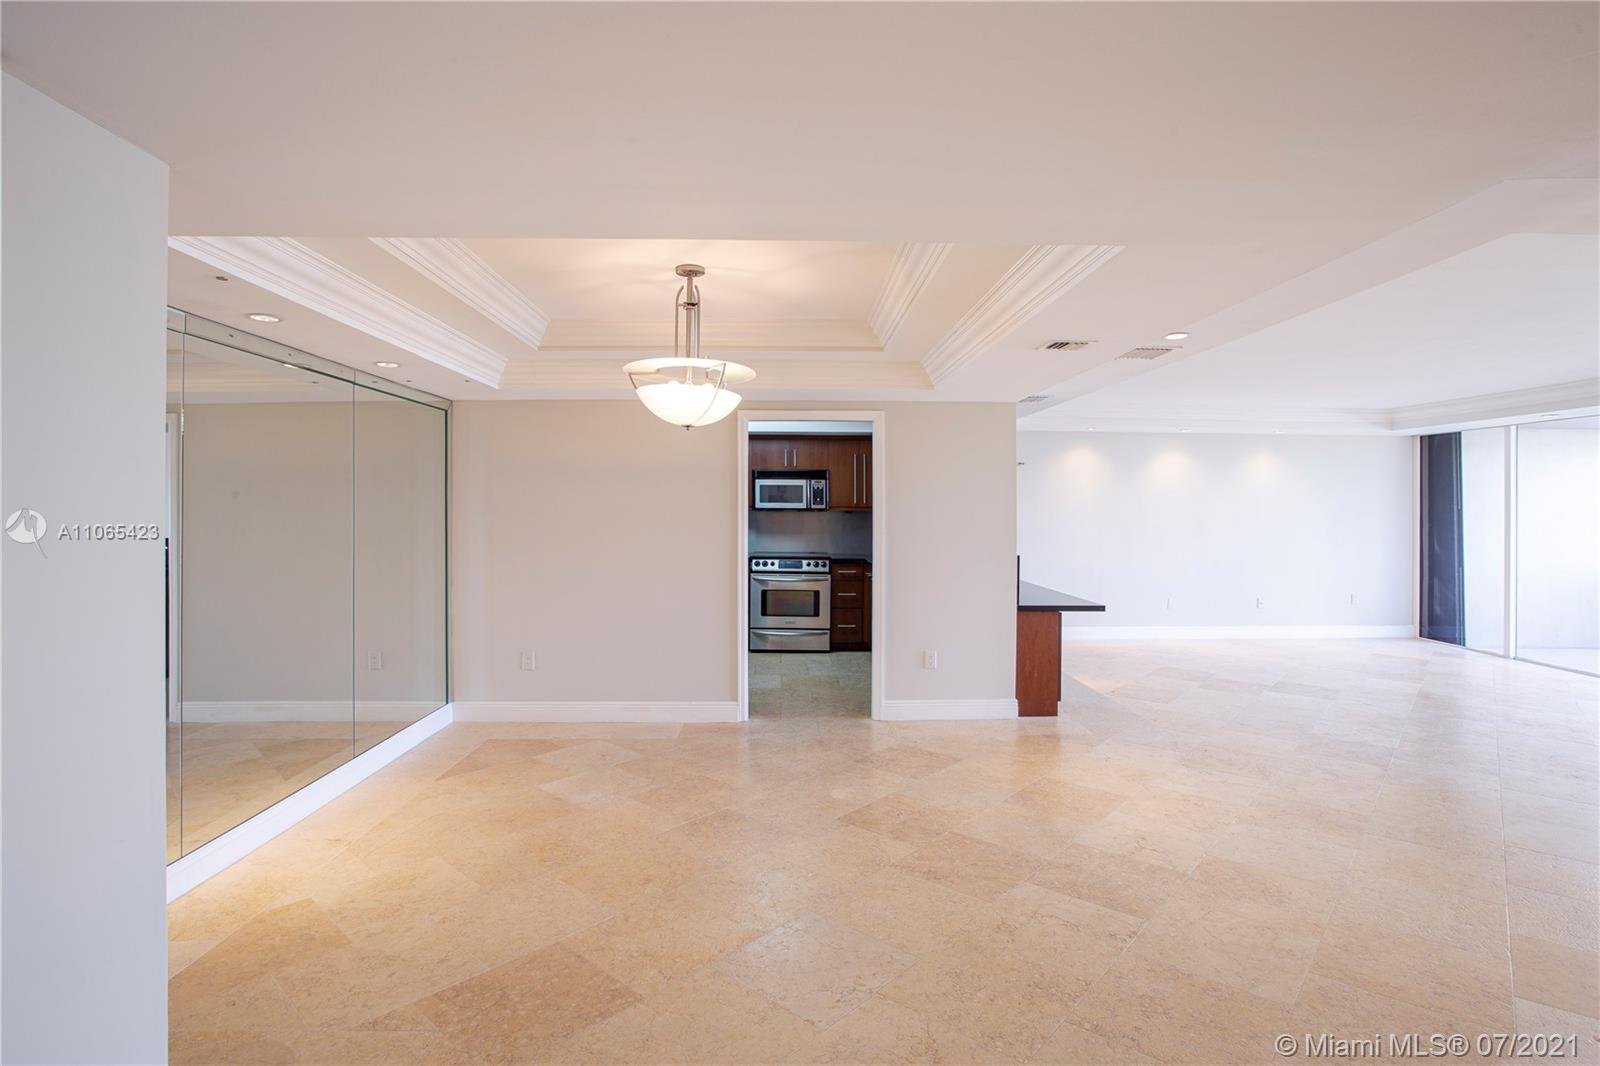 Live on a private gated island in the heart of Miami. Water views from every room. This 2/2 is large and comfortable. This condo has been updated and includes surround sound speakers, marble bath, granite kitchen counter, beautiful mill work, electric window blinds, custom closets and so much more. The community offers marina, gym, walking path, bay access for paddle boards and water enjoyment. It also has tennis courts, movement room, bicycle storage, climatized additional storage and comes with two parking spaces. New assessment started July $192.00/mo. It's a lifestyle and a condo in one!!